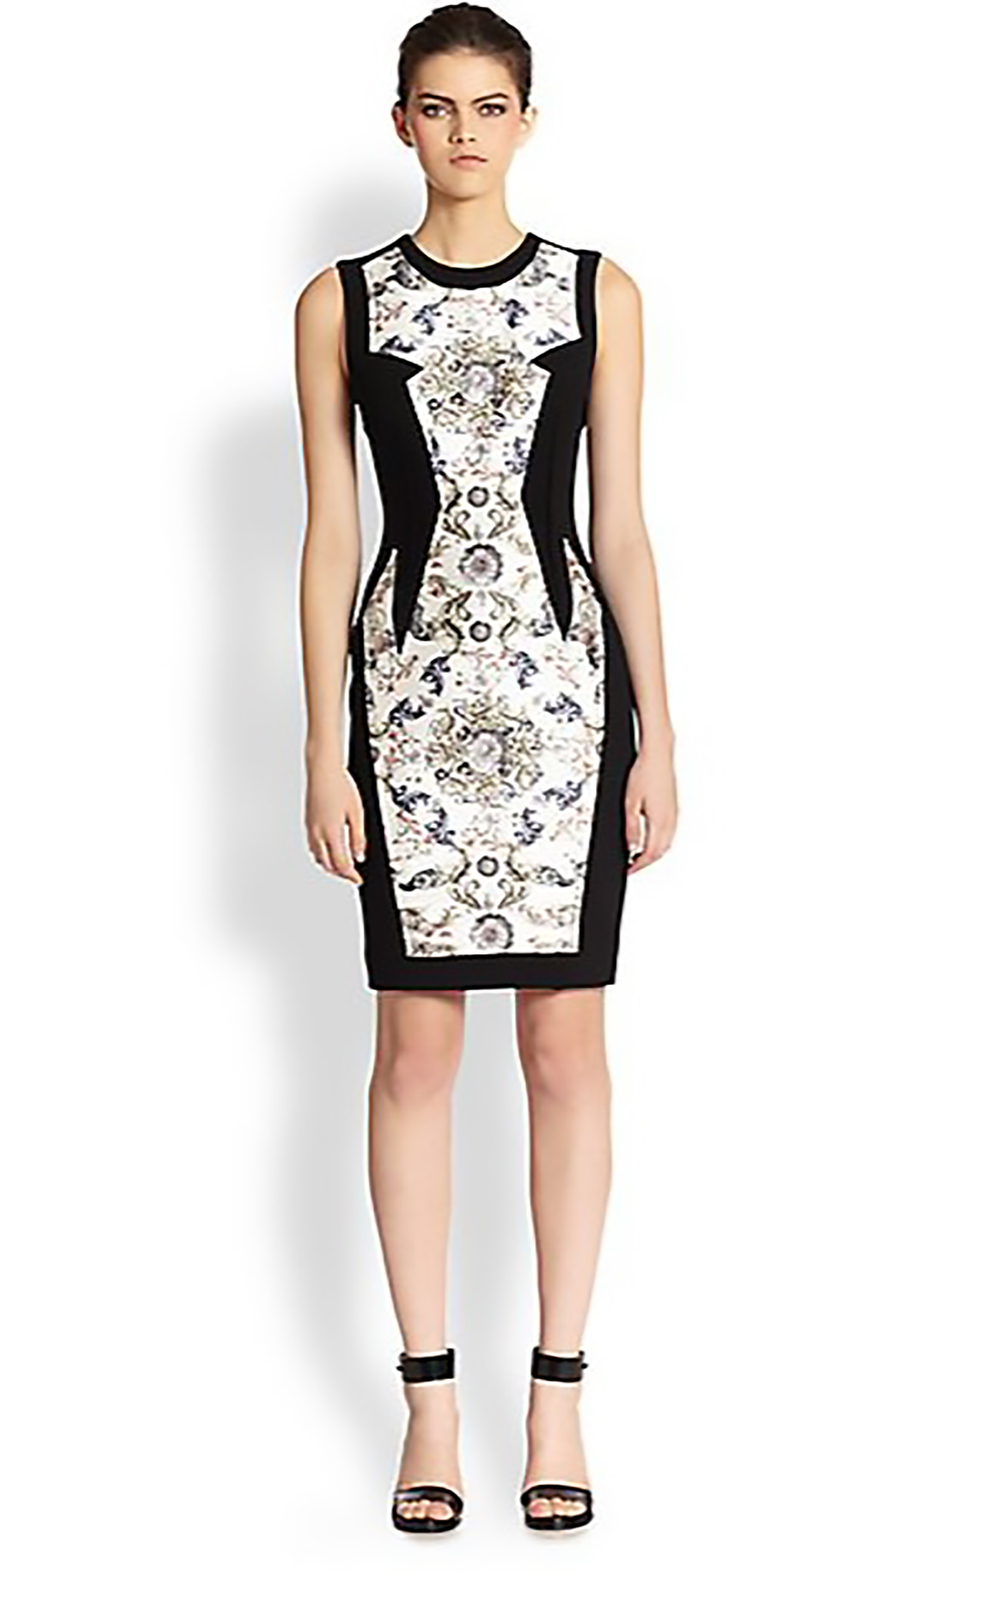 saks fifth avenue prabal gurung winter florals  1500.jpg